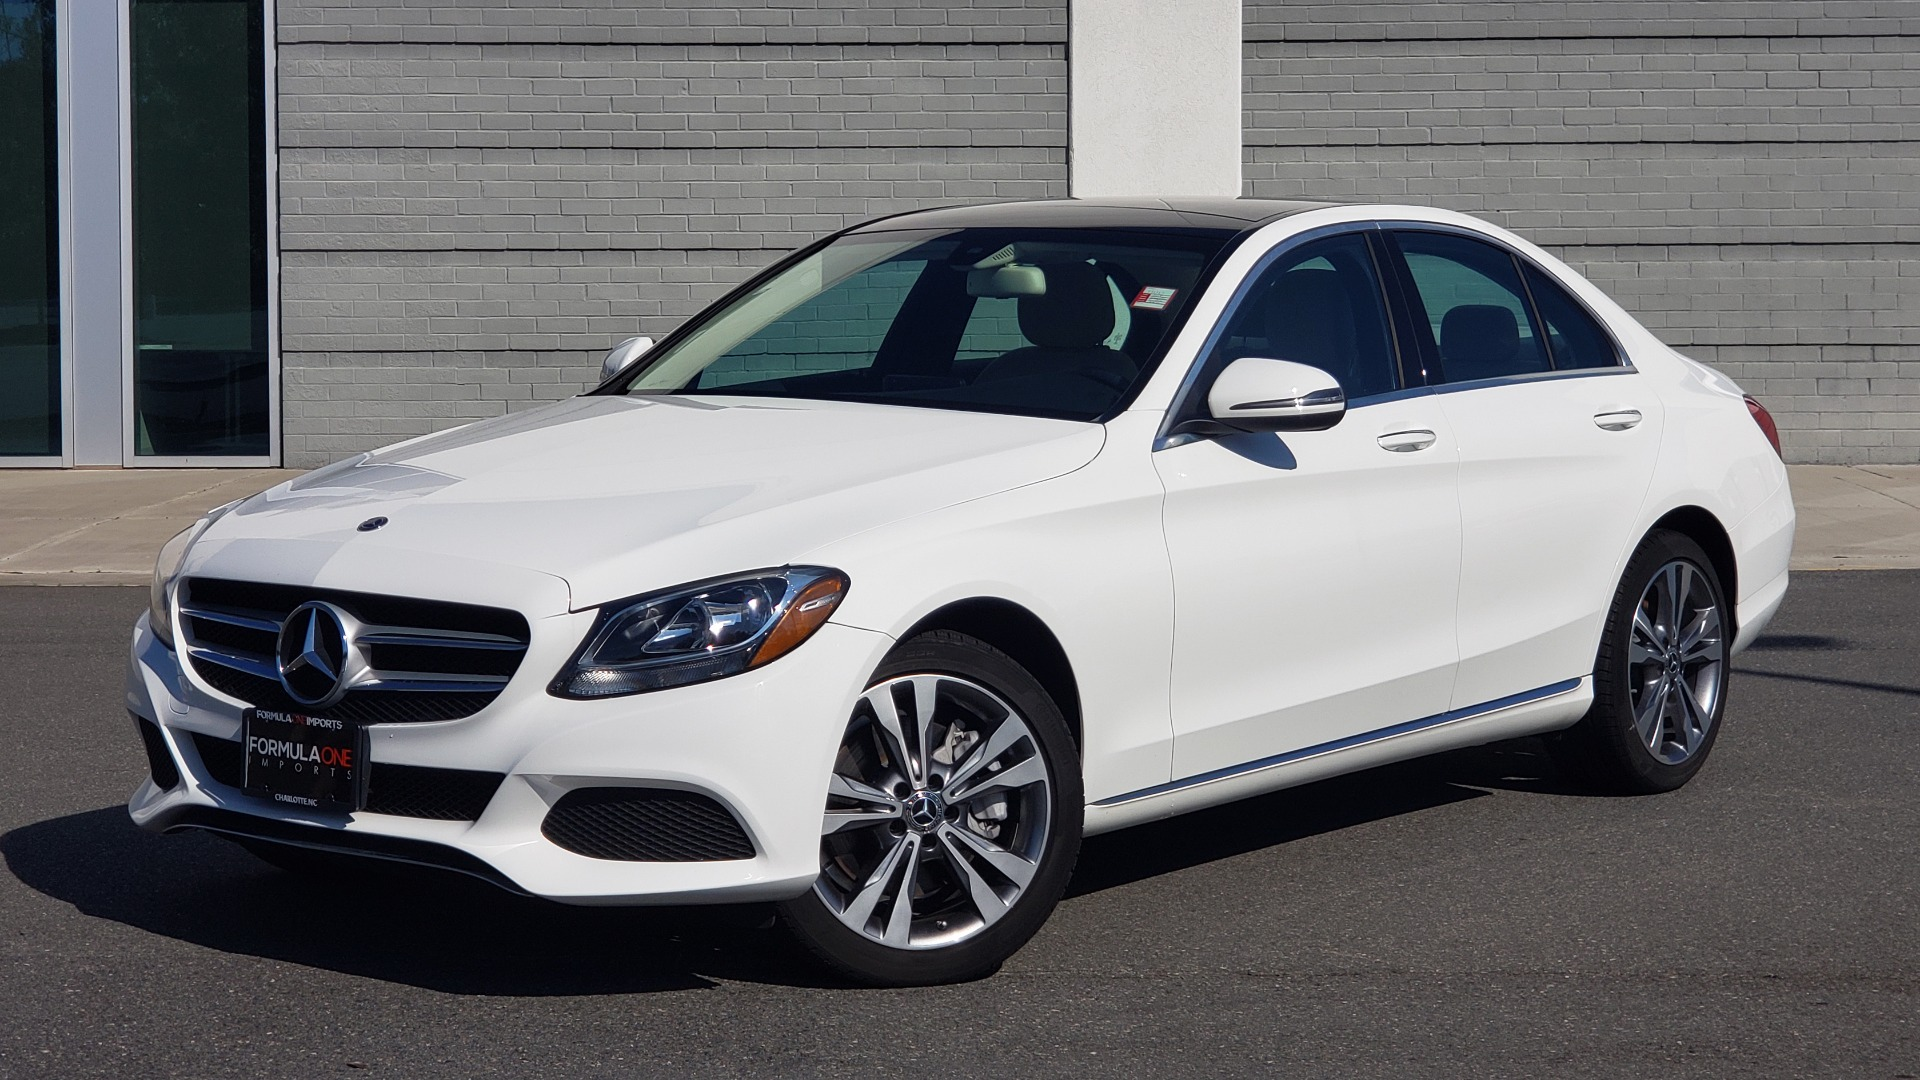 Used 2018 Mercedes-Benz C-Class C 300 4MATIC PREMIUM / APPLE CARPLAY / PANO-ROOF / REARVIEW for sale $33,795 at Formula Imports in Charlotte NC 28227 8